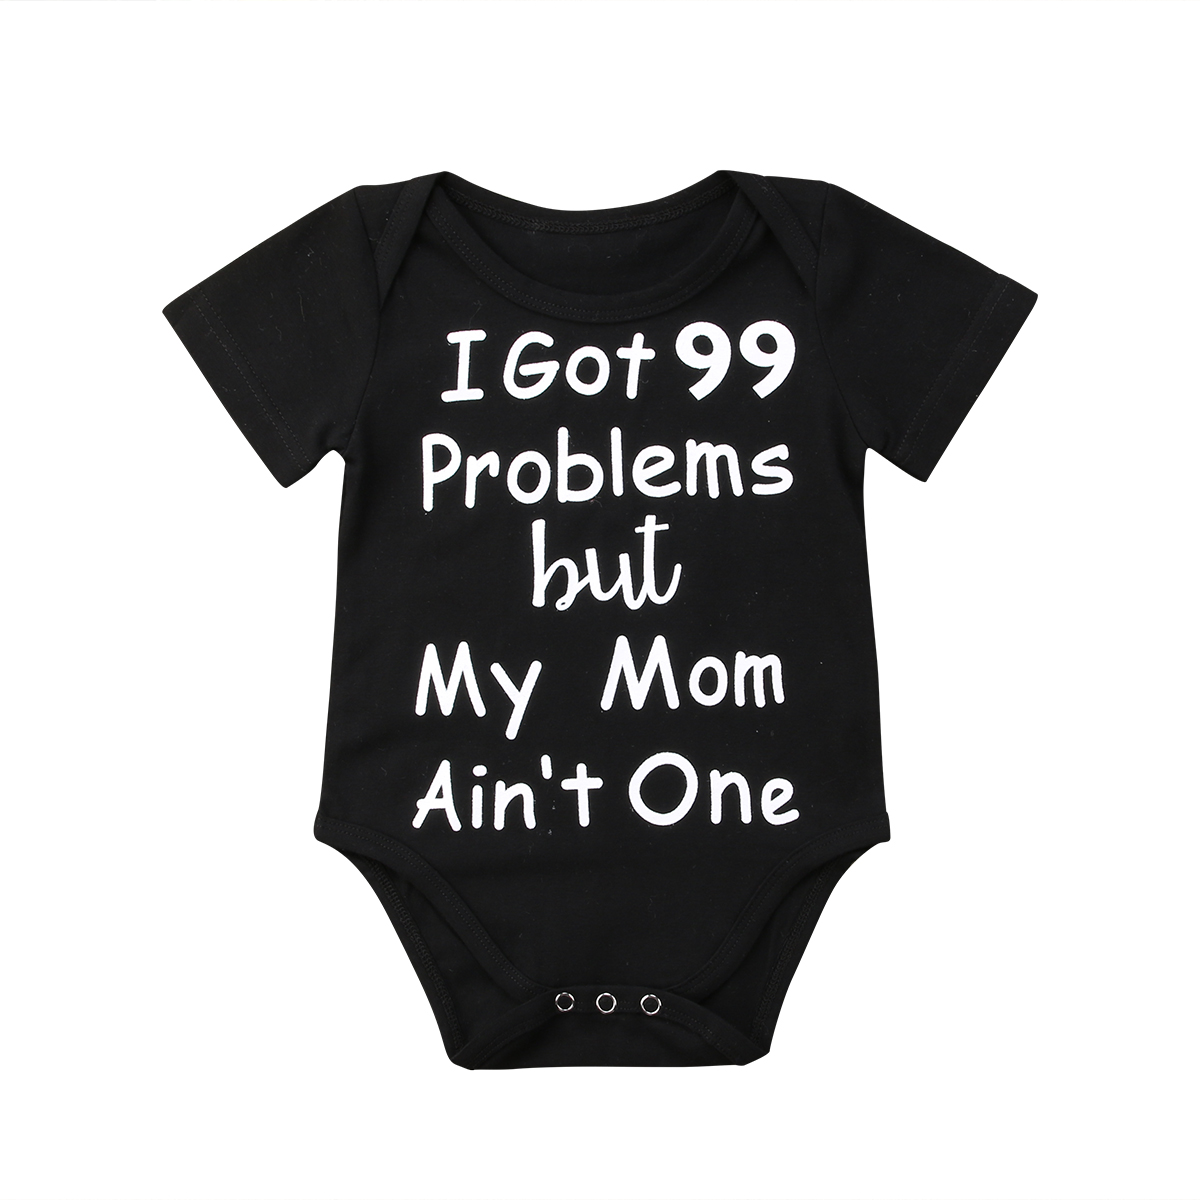 492ad4e497 2018 Newborn Infant Baby Boys Girls Cotton Short Sleeves Bodysuit Jumpsuit  Clothes Letters Black Casual Outfits